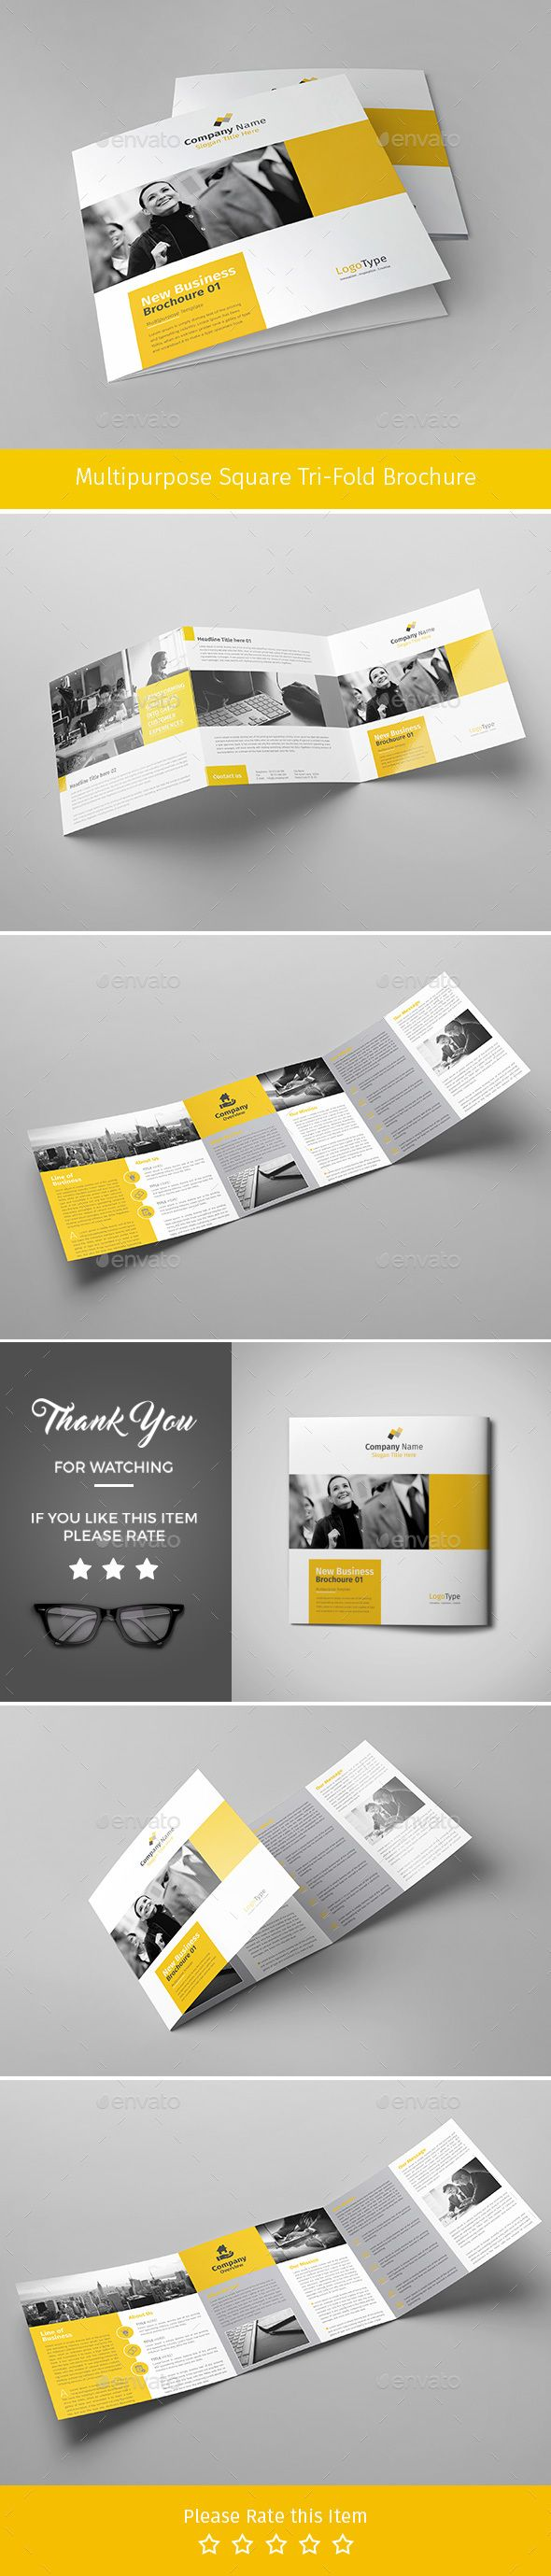 Corporate Tri-fold Square Brochure 02